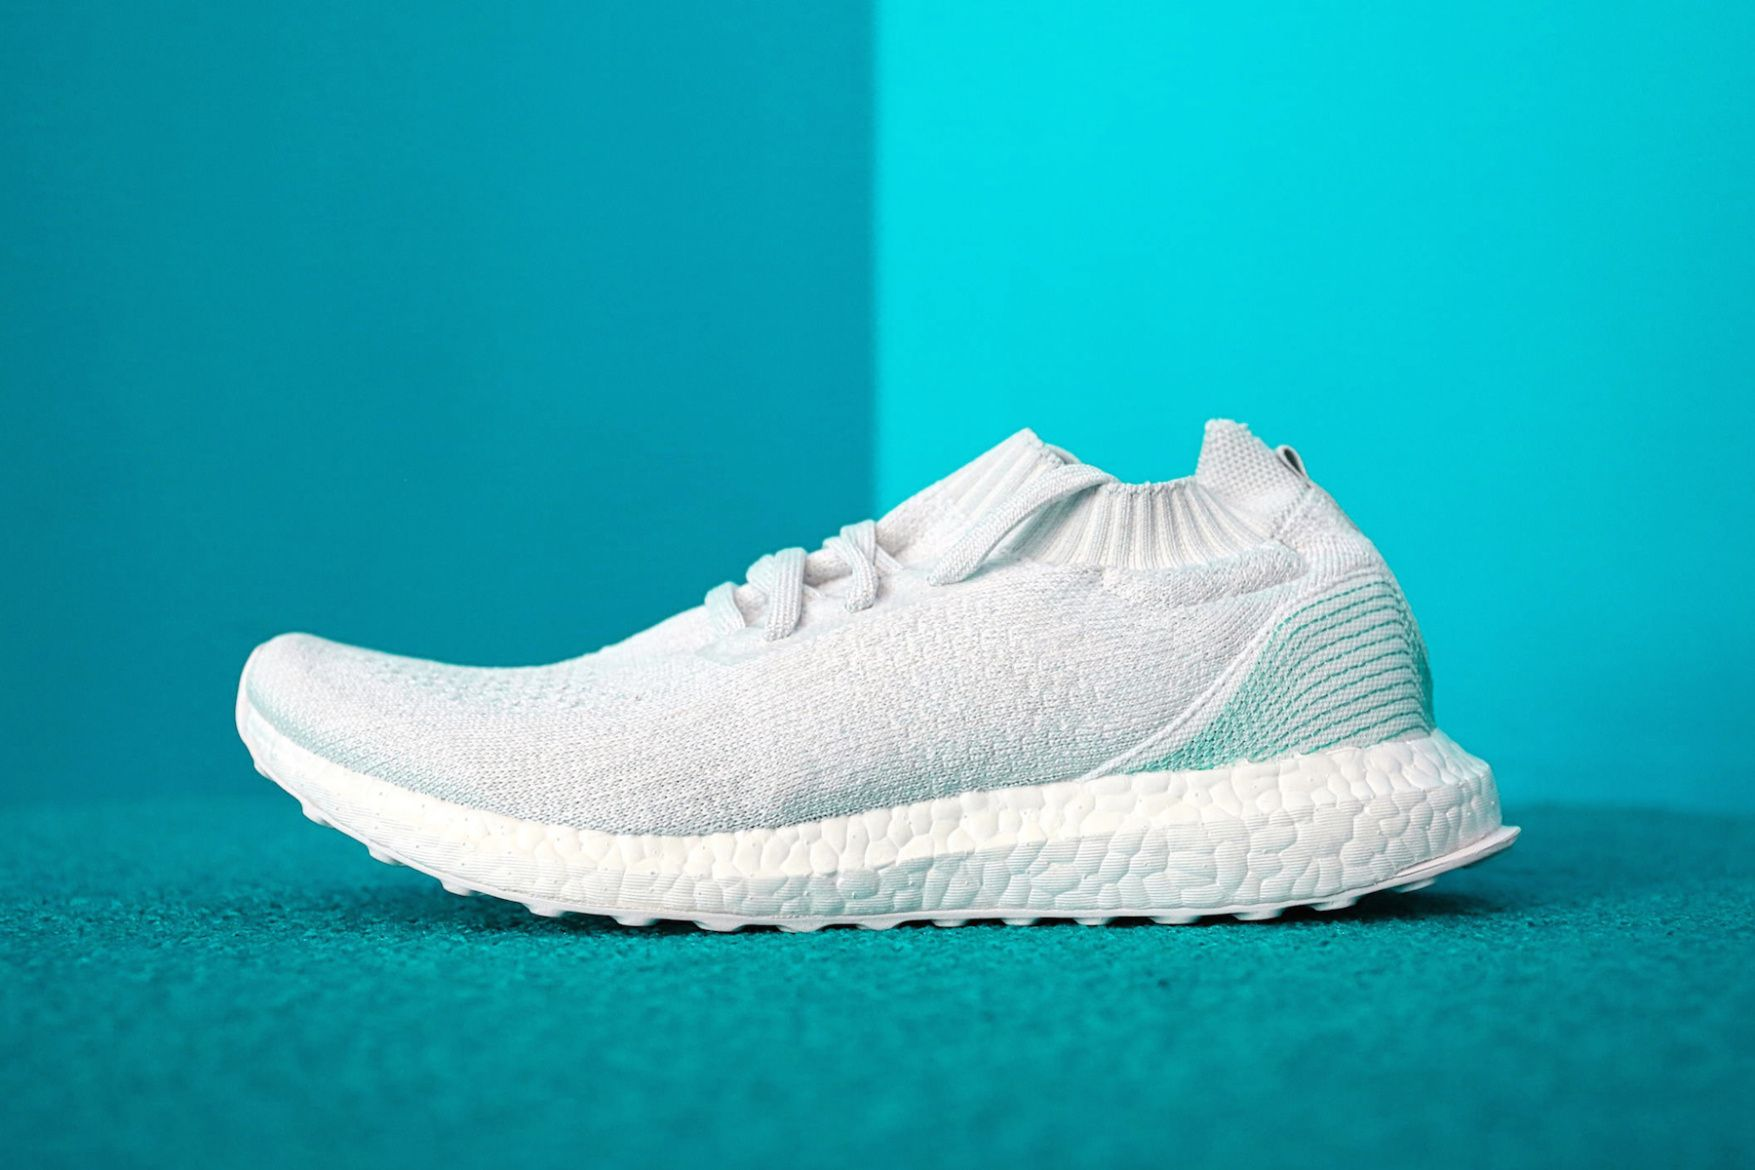 low priced ac59b c688c adidas x Parley Ocean 聯名海洋保育別注 UltraBoost Uncaged ...